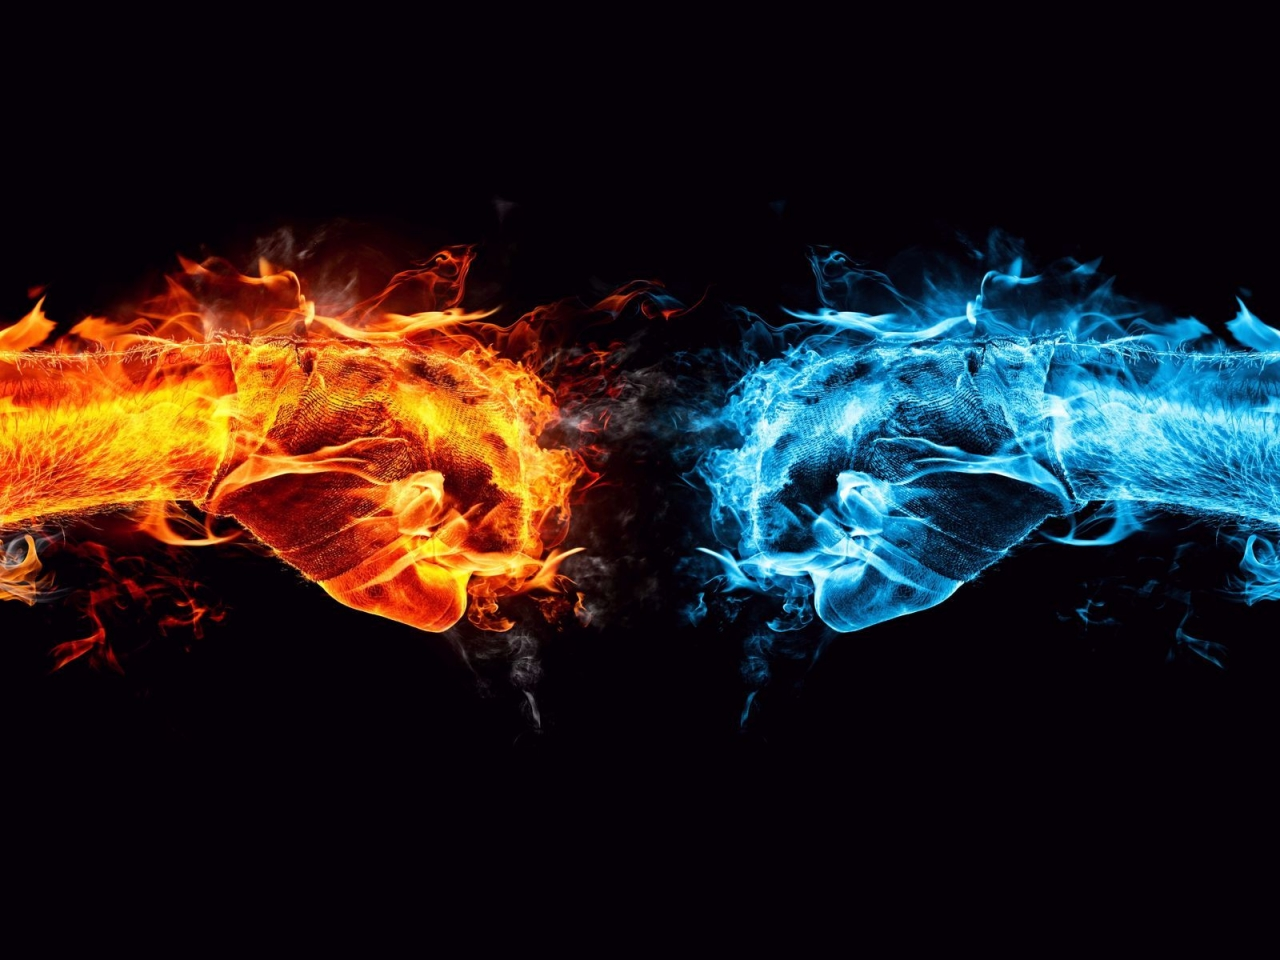 Fire and Ice Conflict for 1280 x 960 resolution